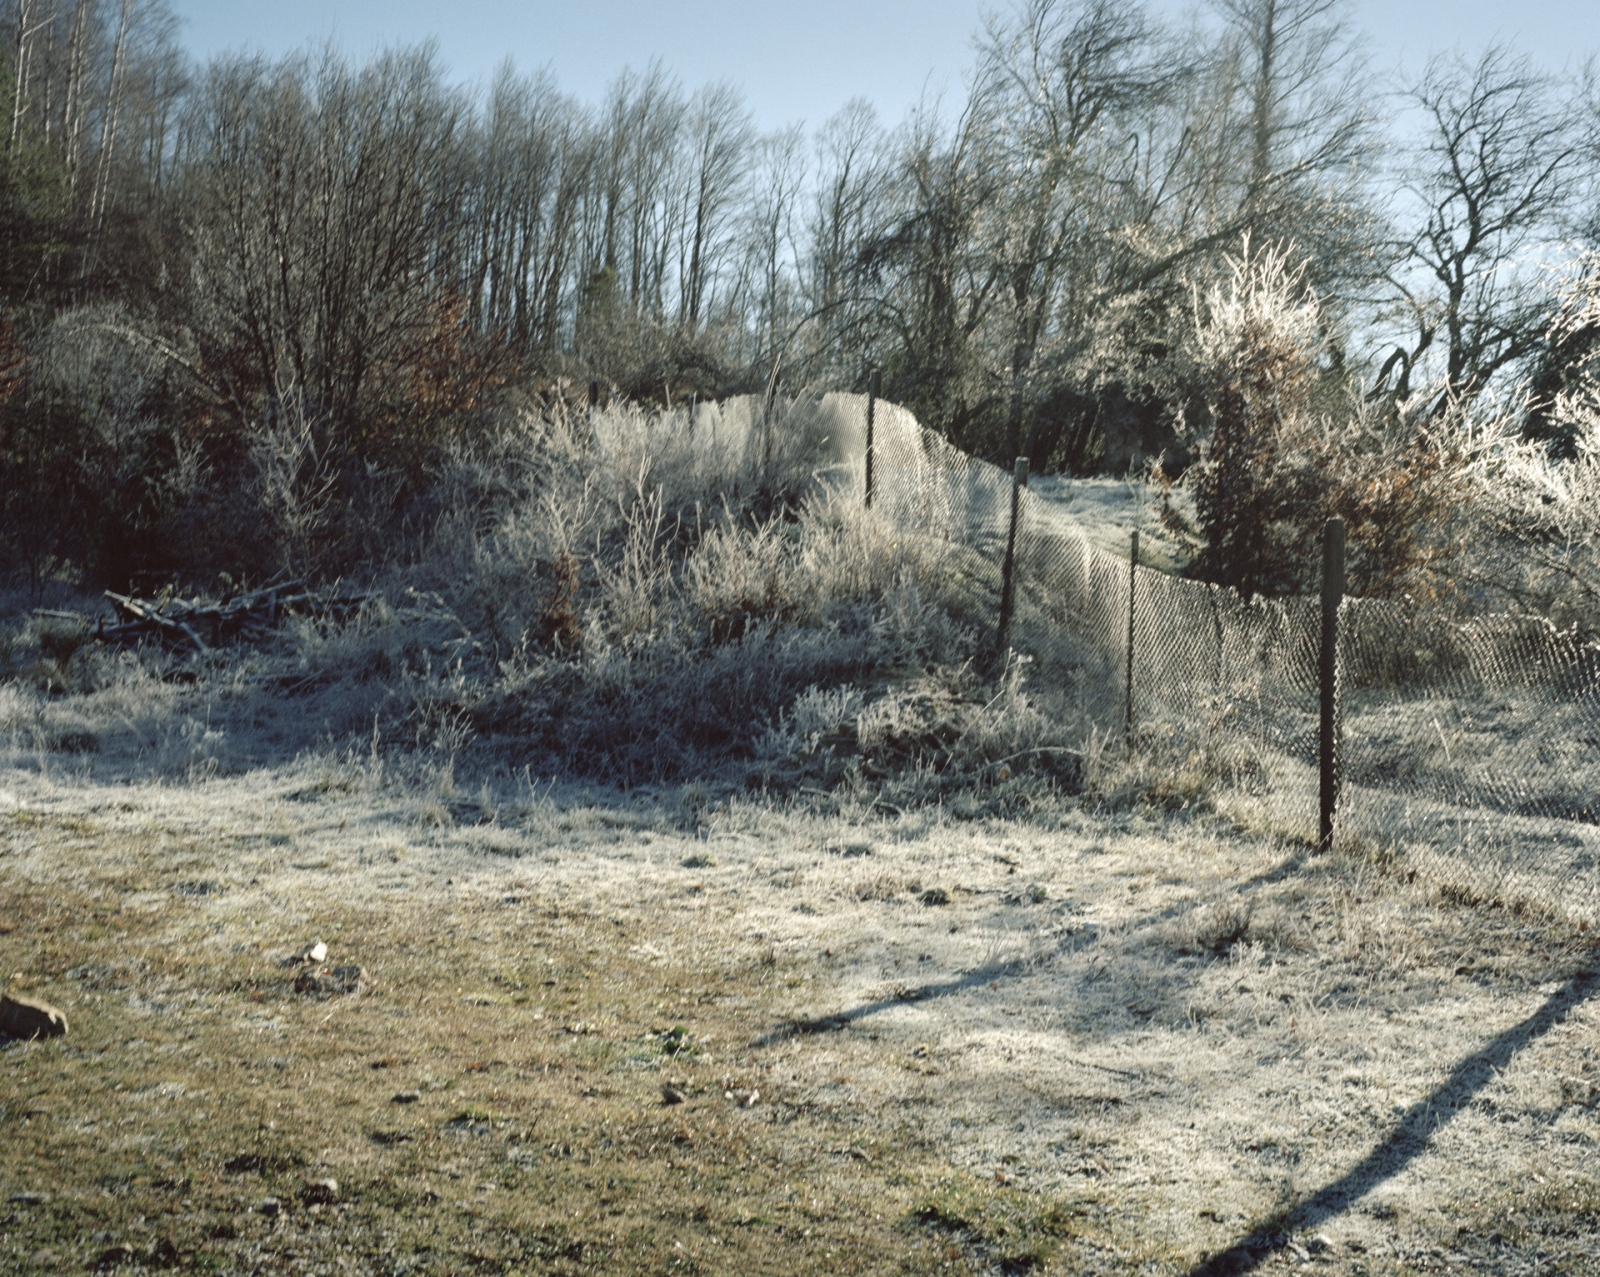 Bulgaria, Rudozen. The fence part of the old Iron Curtain that was separating Bulgaria from Greece.